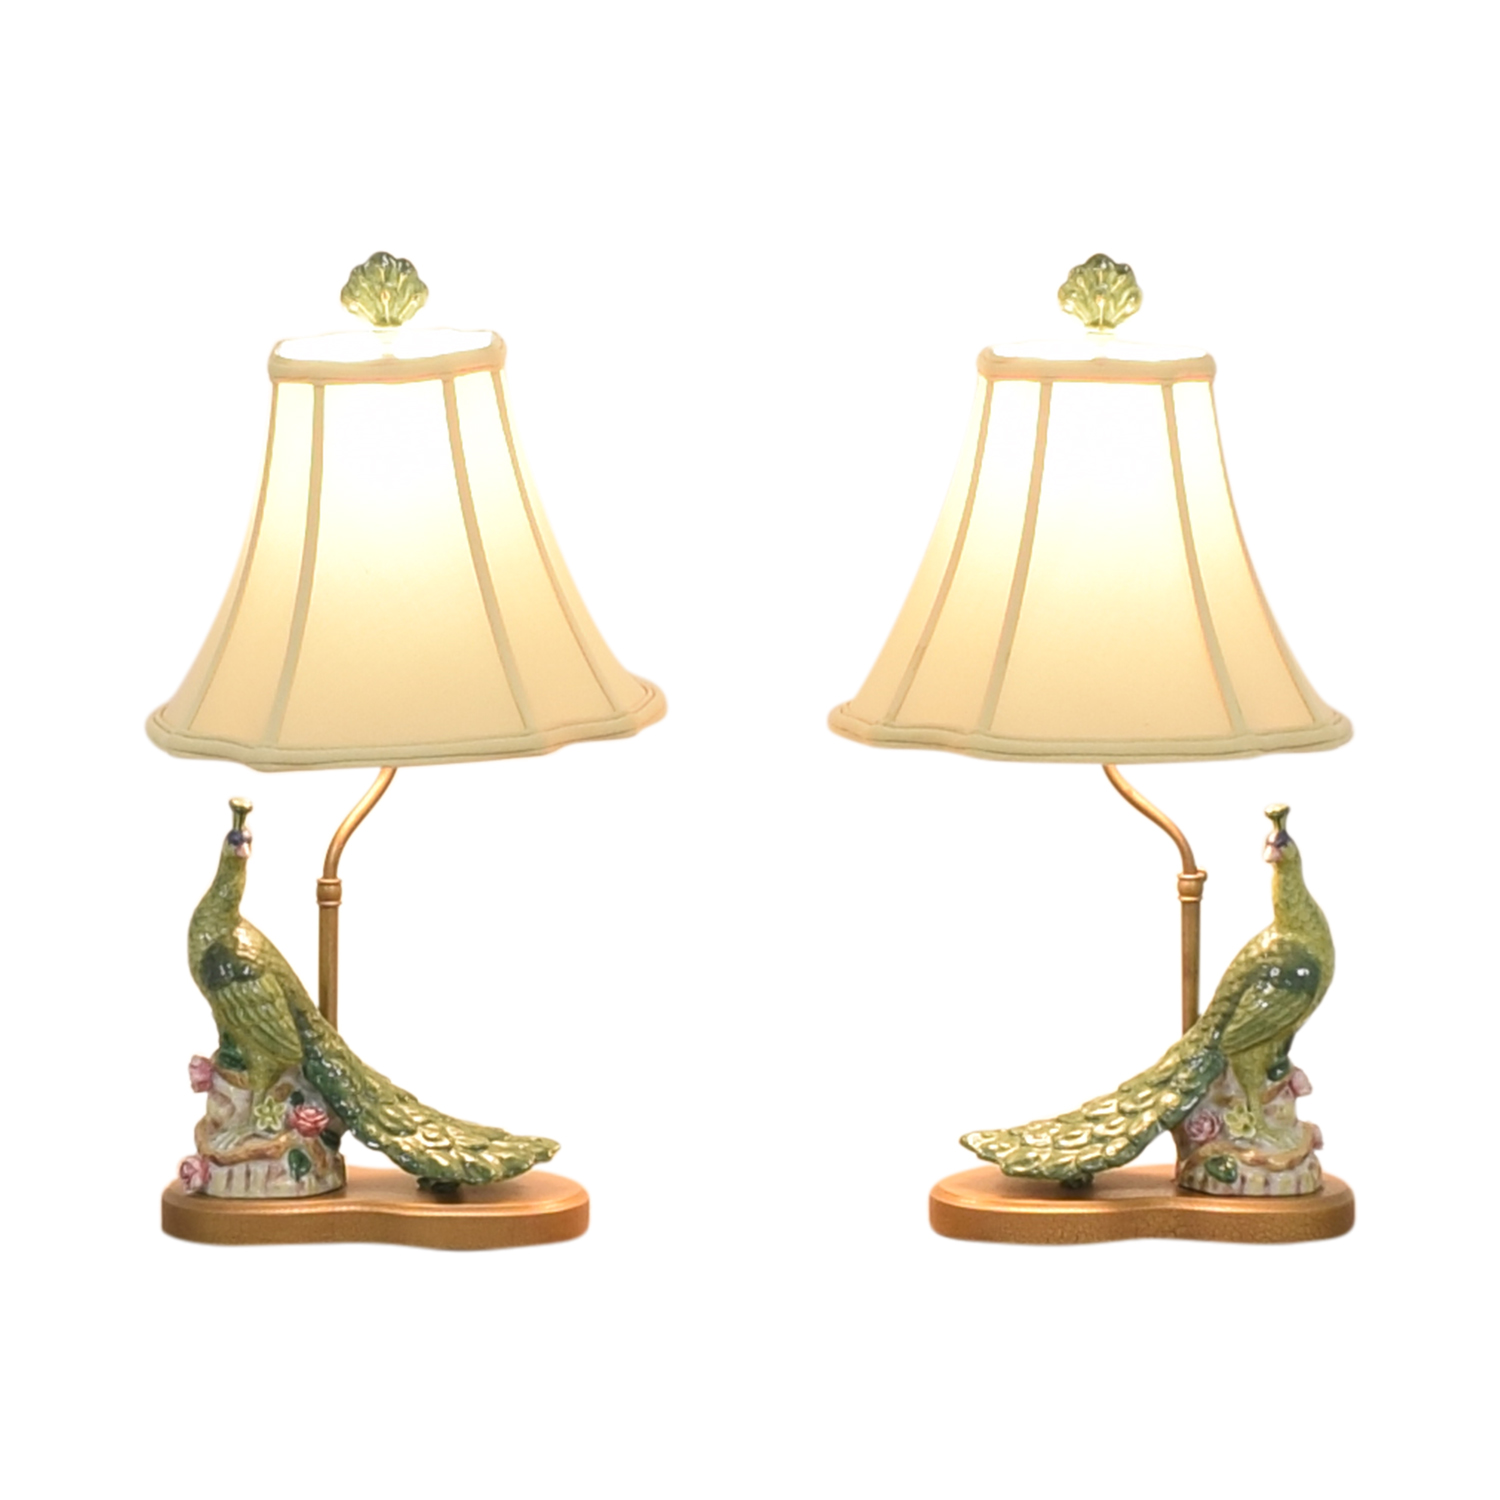 Ethan Allen Ethan Allen Decorative Table Lamps for sale